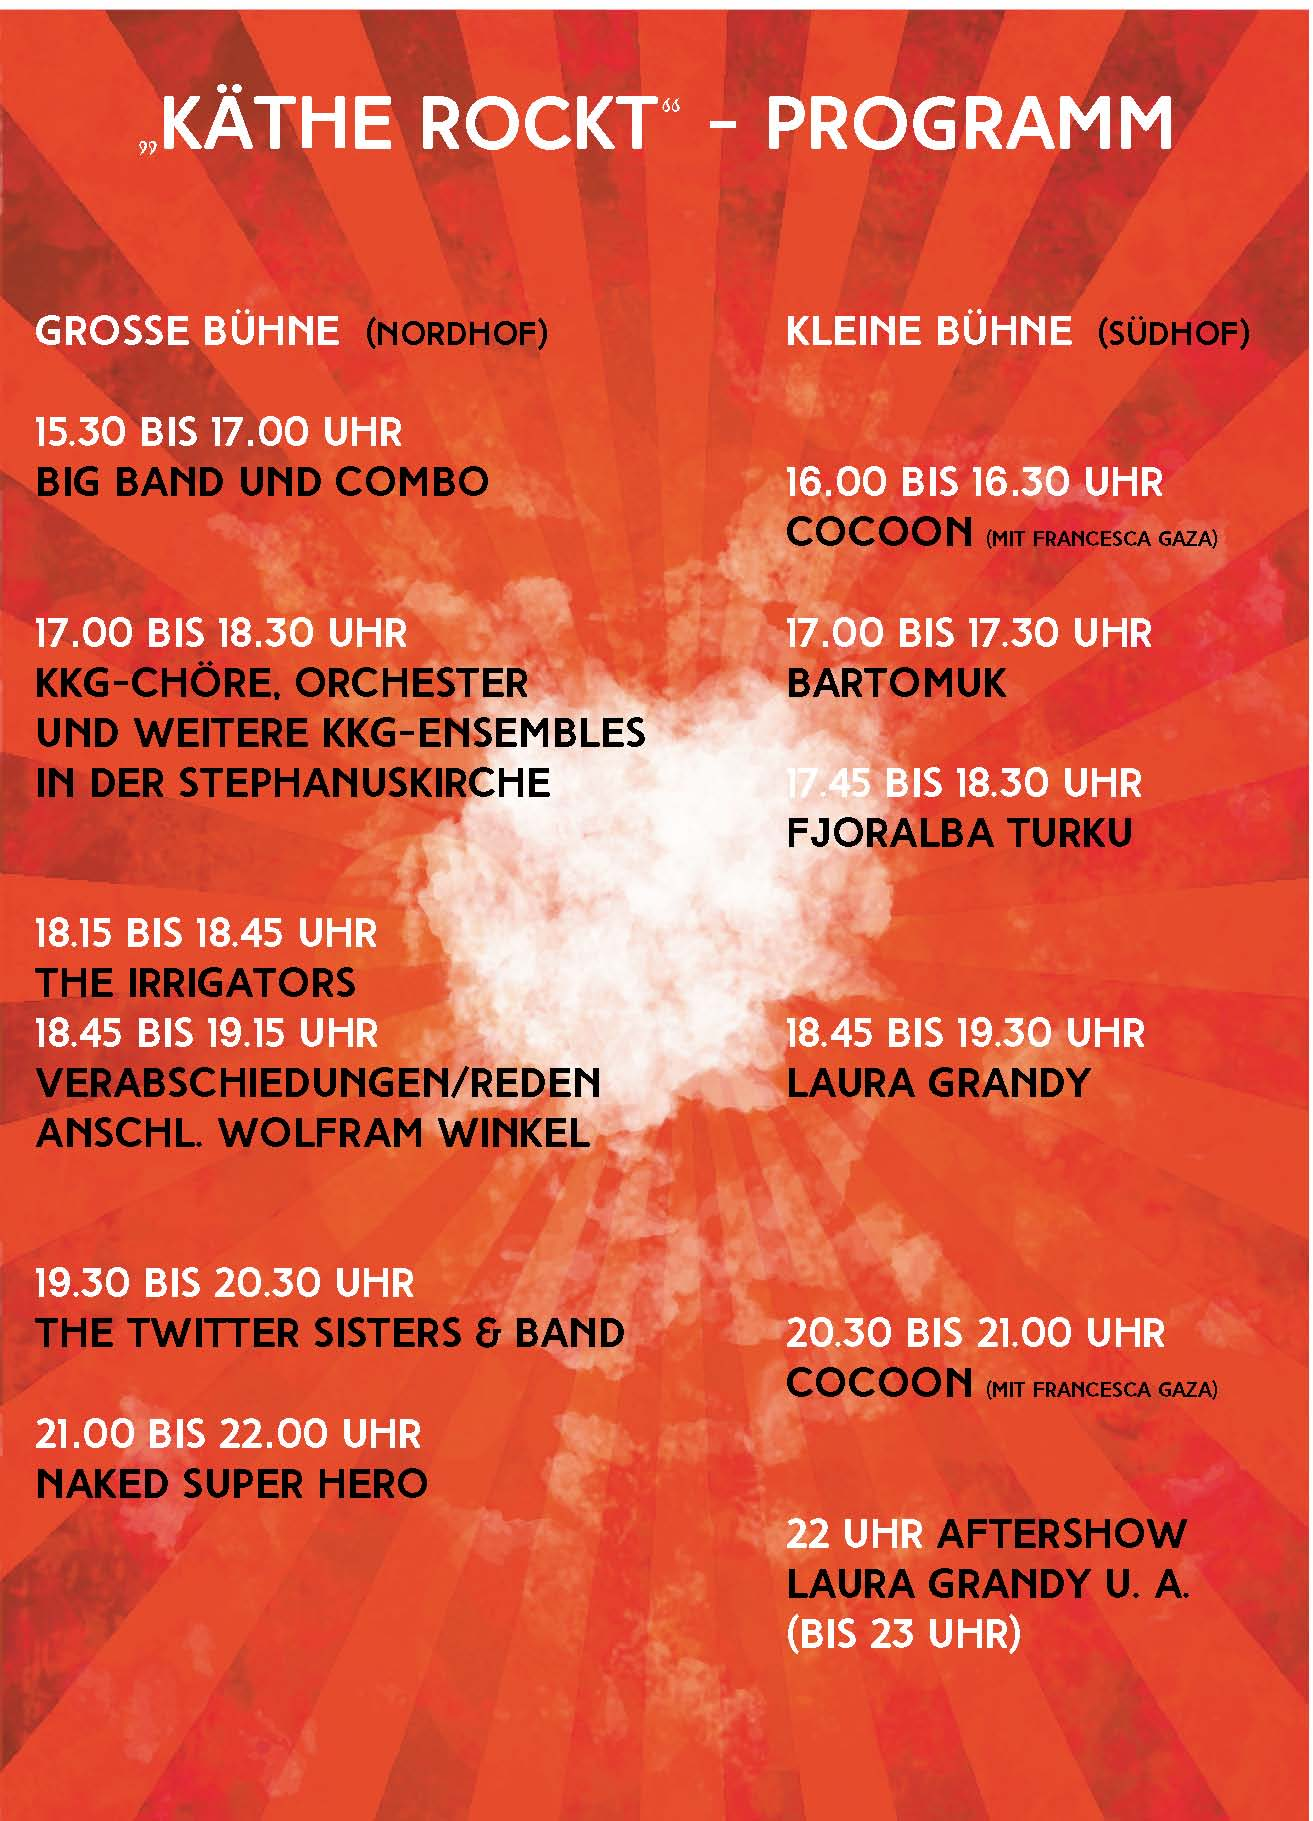 Programm K the rockt final Layout 1 Seite 2